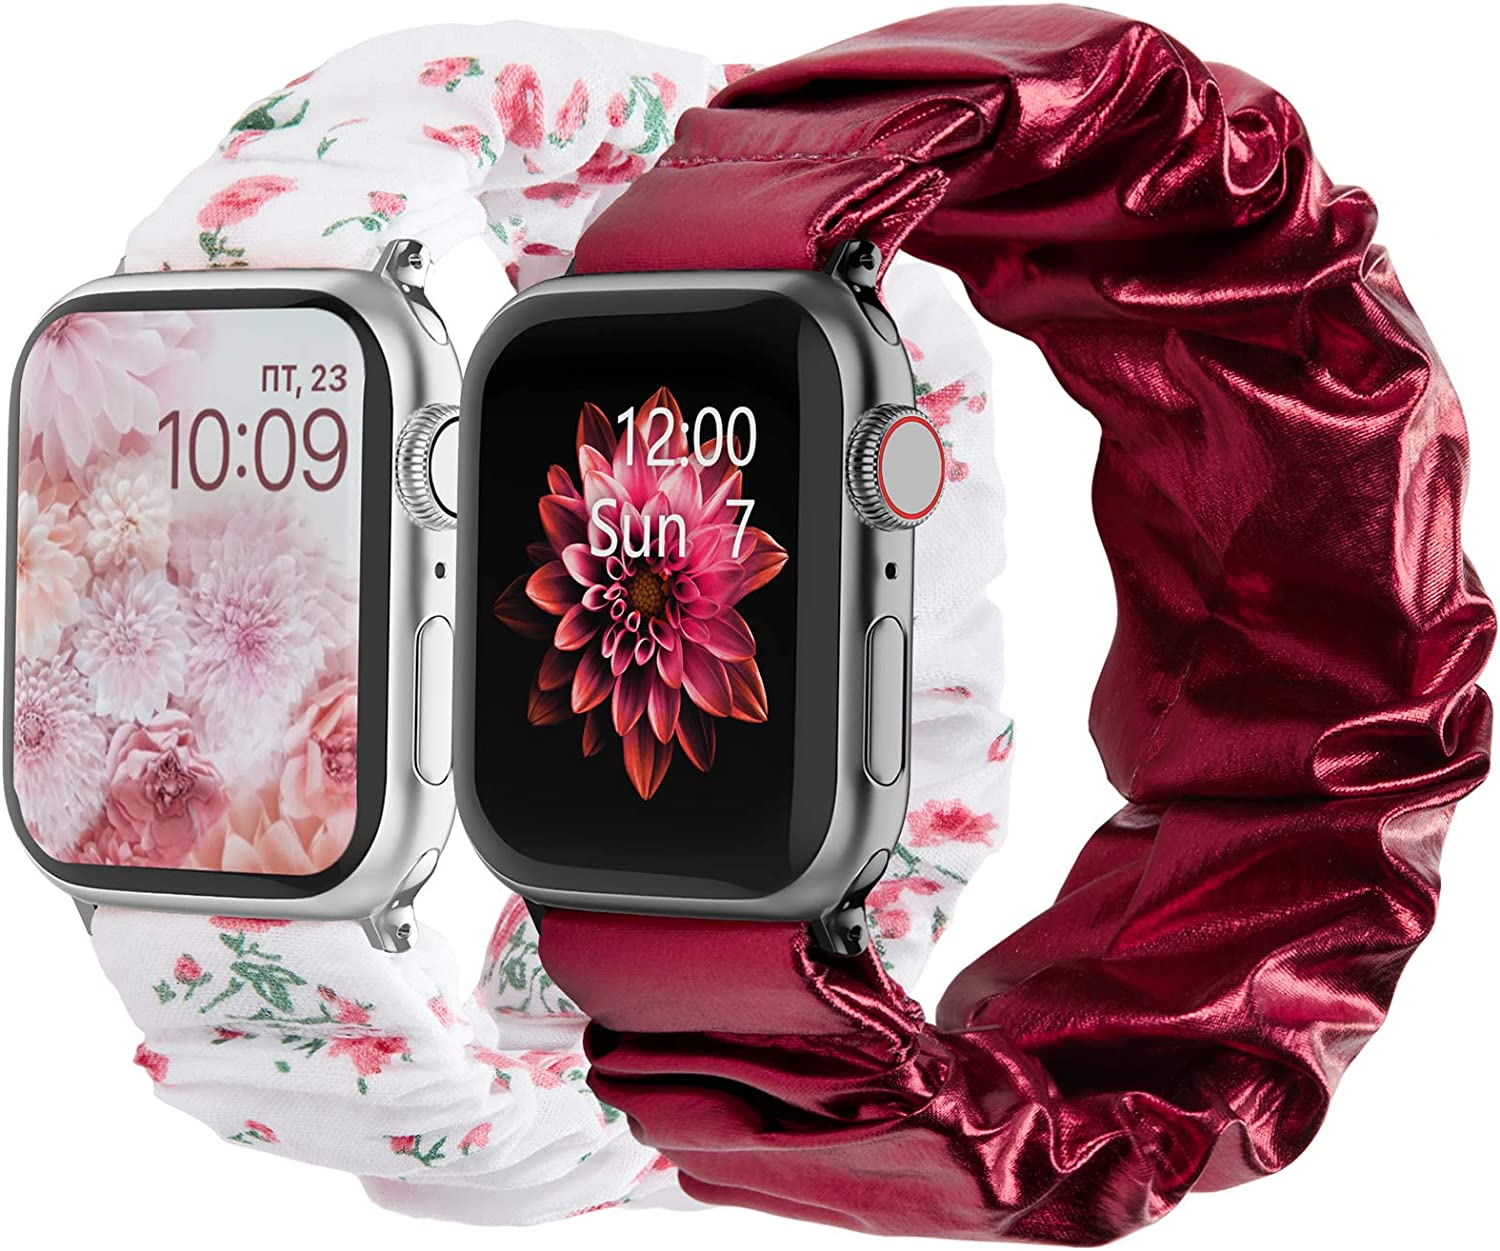 POY Compatible with Scrunchies Apple Watch Bands 38mm 40mm 42mm 44mm, Women Cloth Pattern Printed Fabric Wristbands Straps Elastic Scrunchy Band for iWatch Series 6 5 4 3 2 1 SE